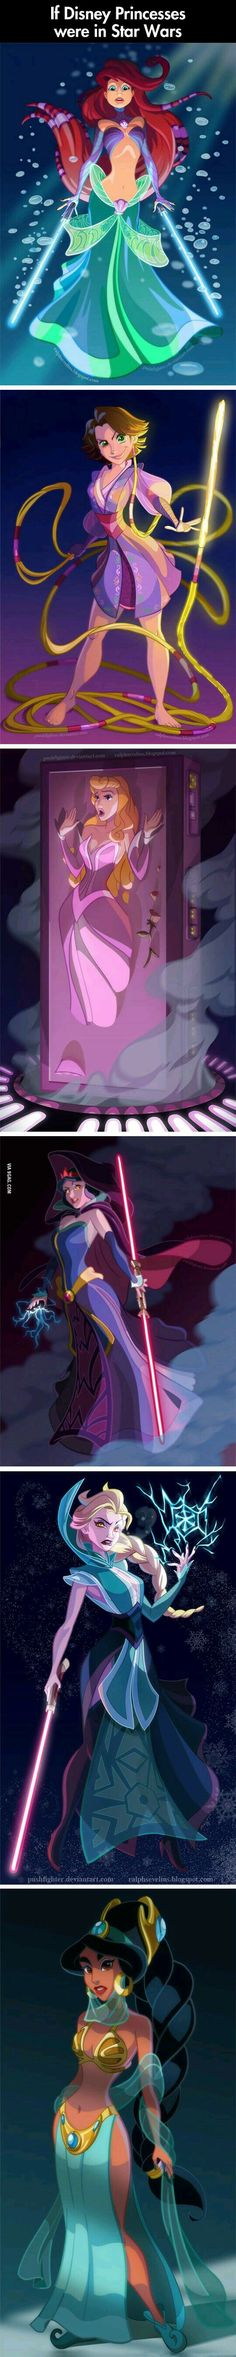 If Disney Princesses Were In Star Wars. This is everything!!!!!!